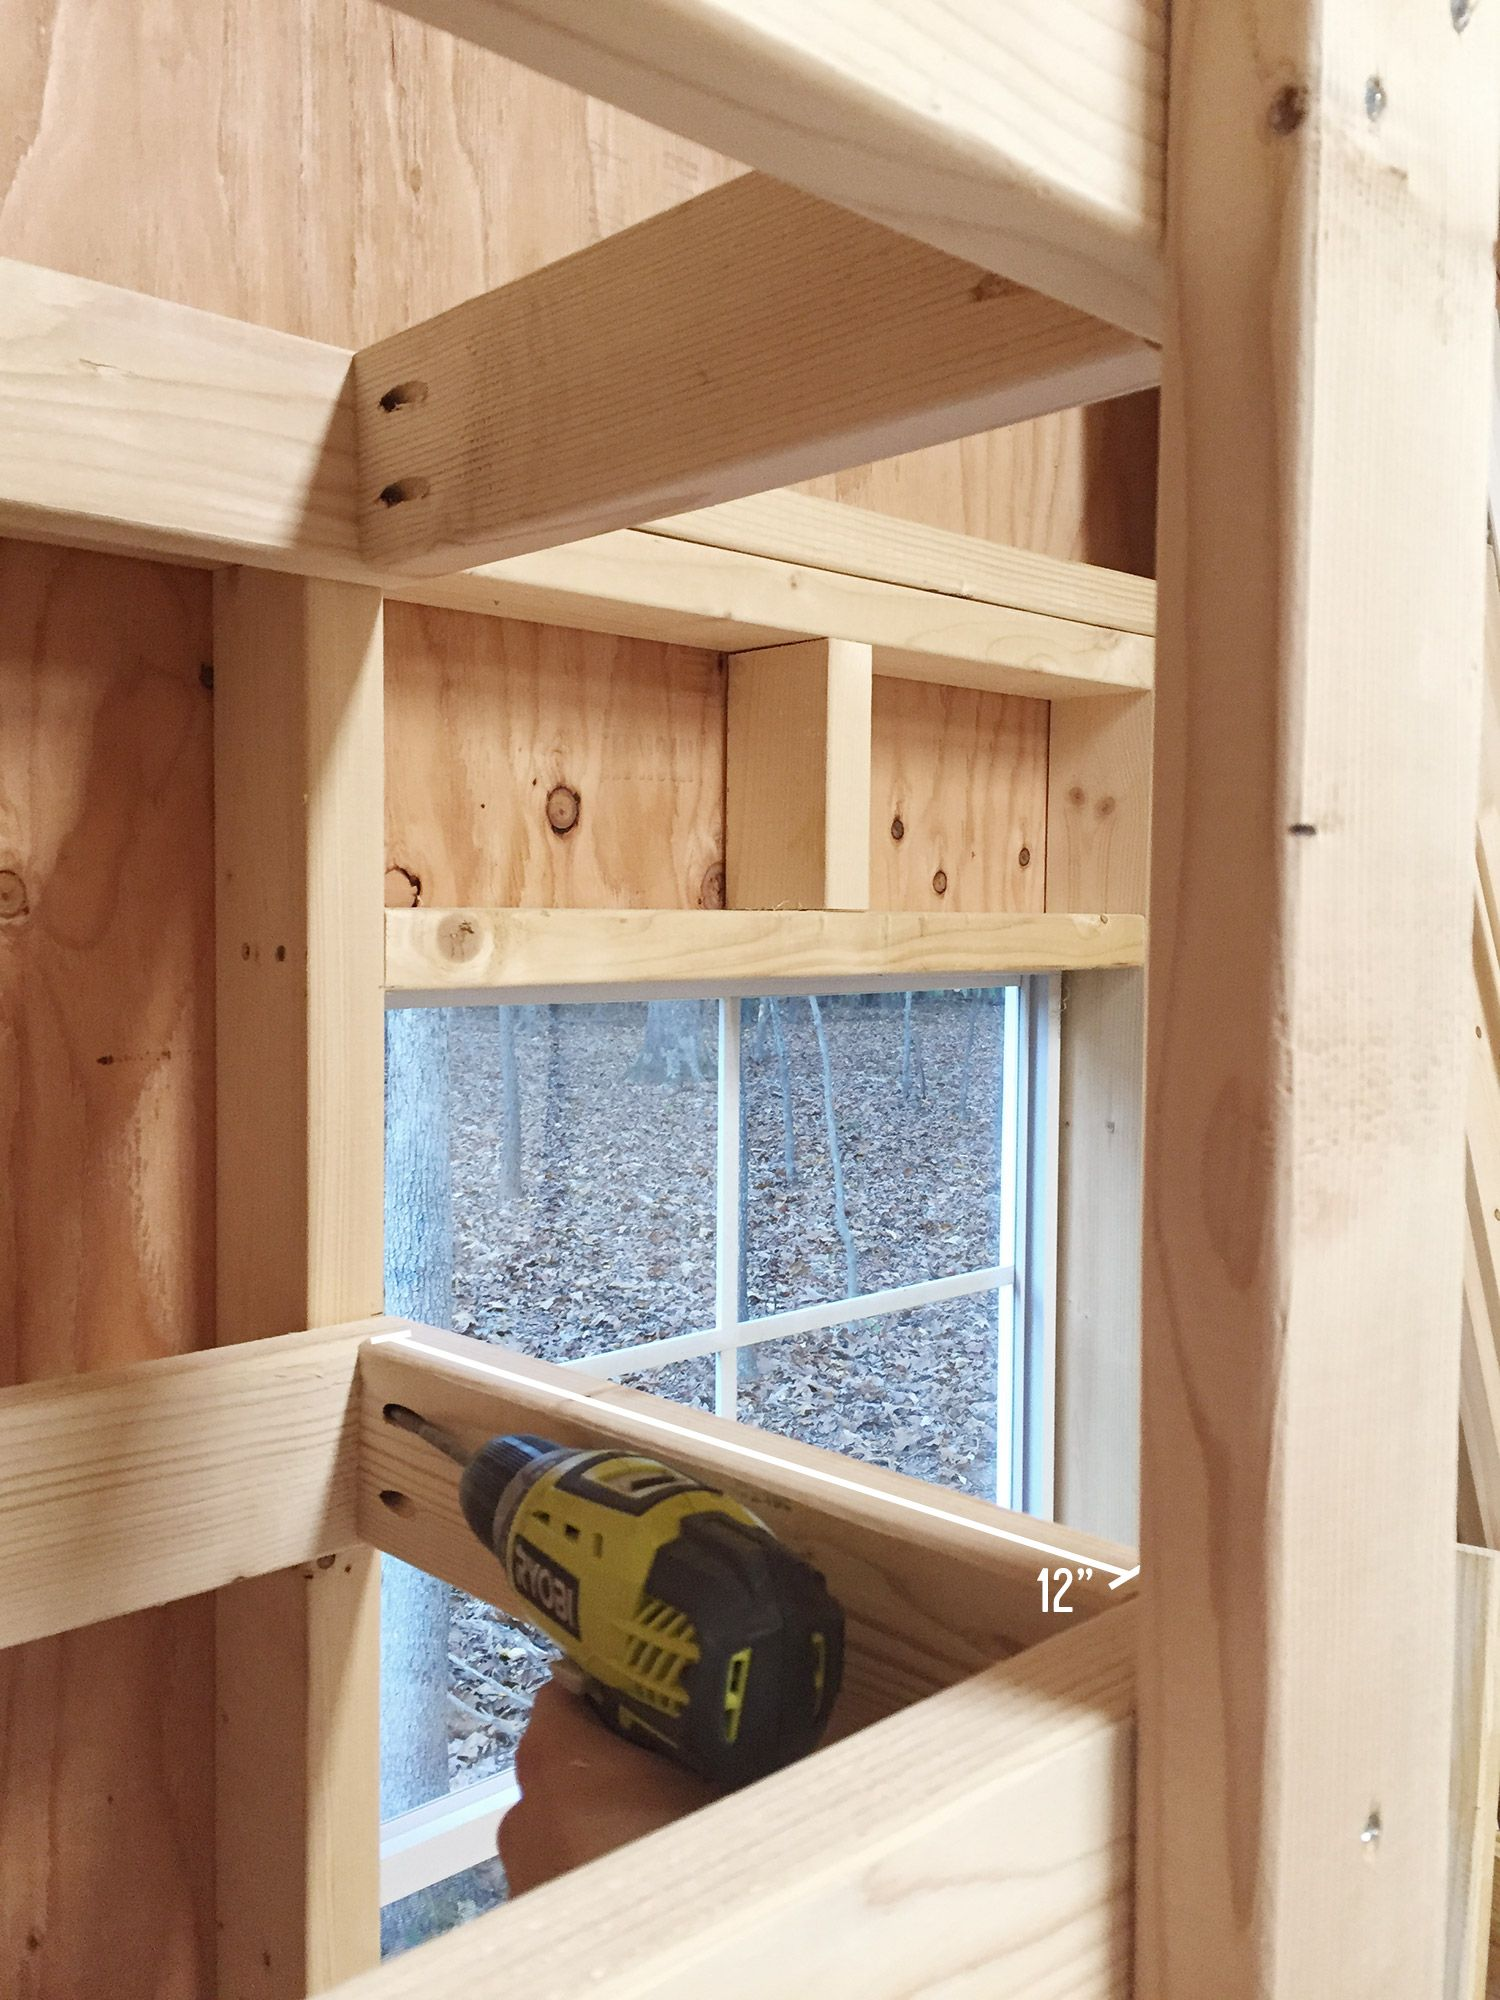 4 Shed Storage Ideas For Tons Of